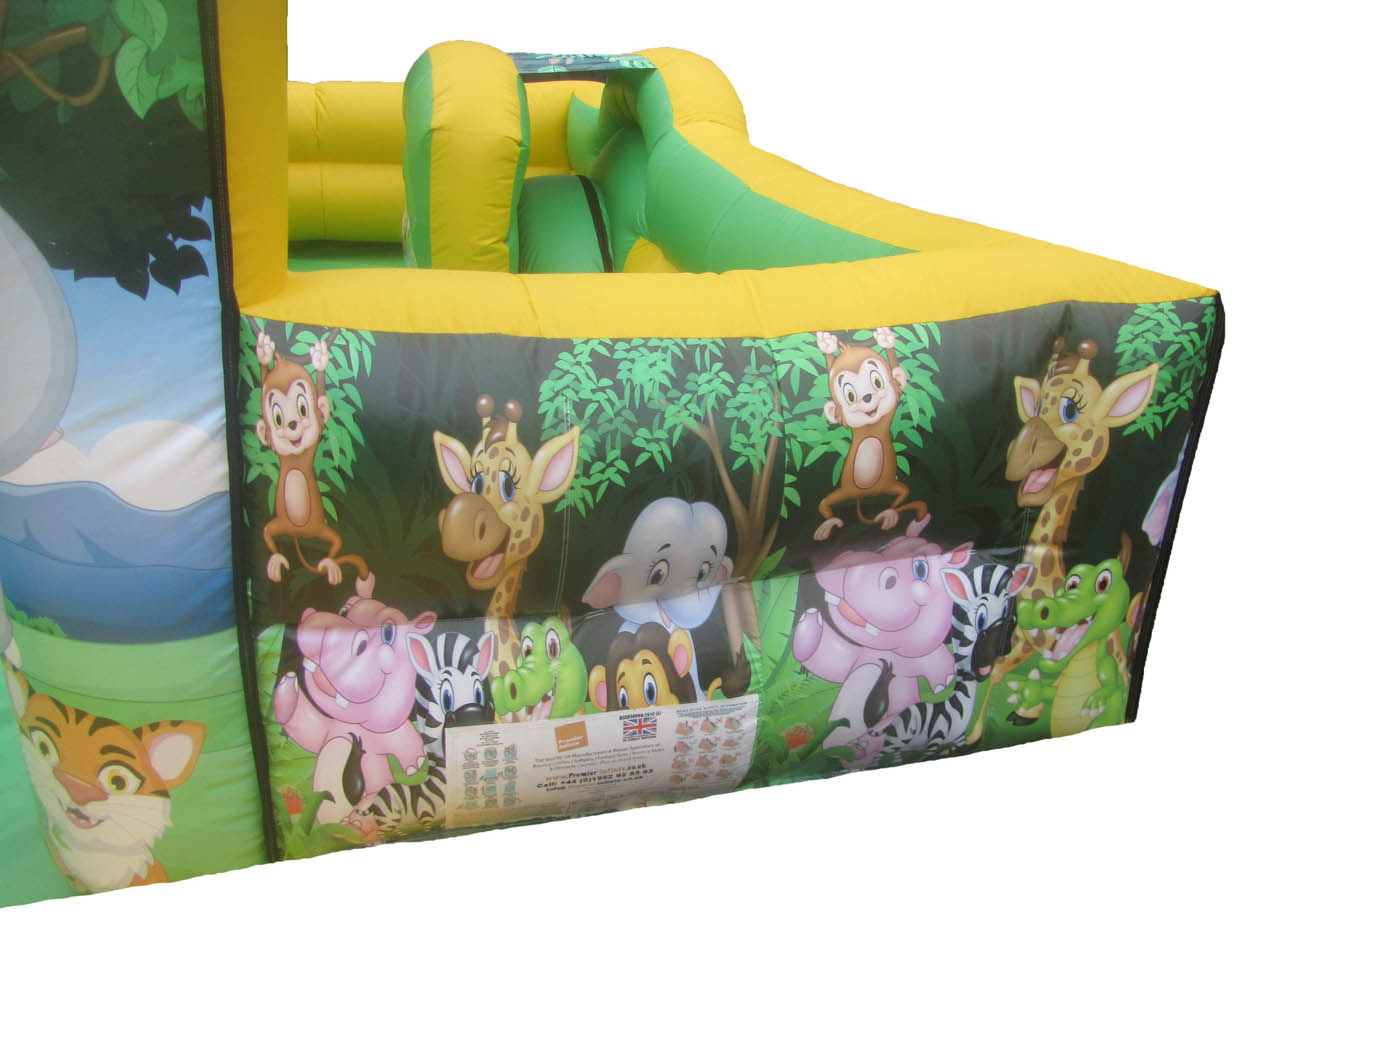 Jungle Themed Inflatable Artwork